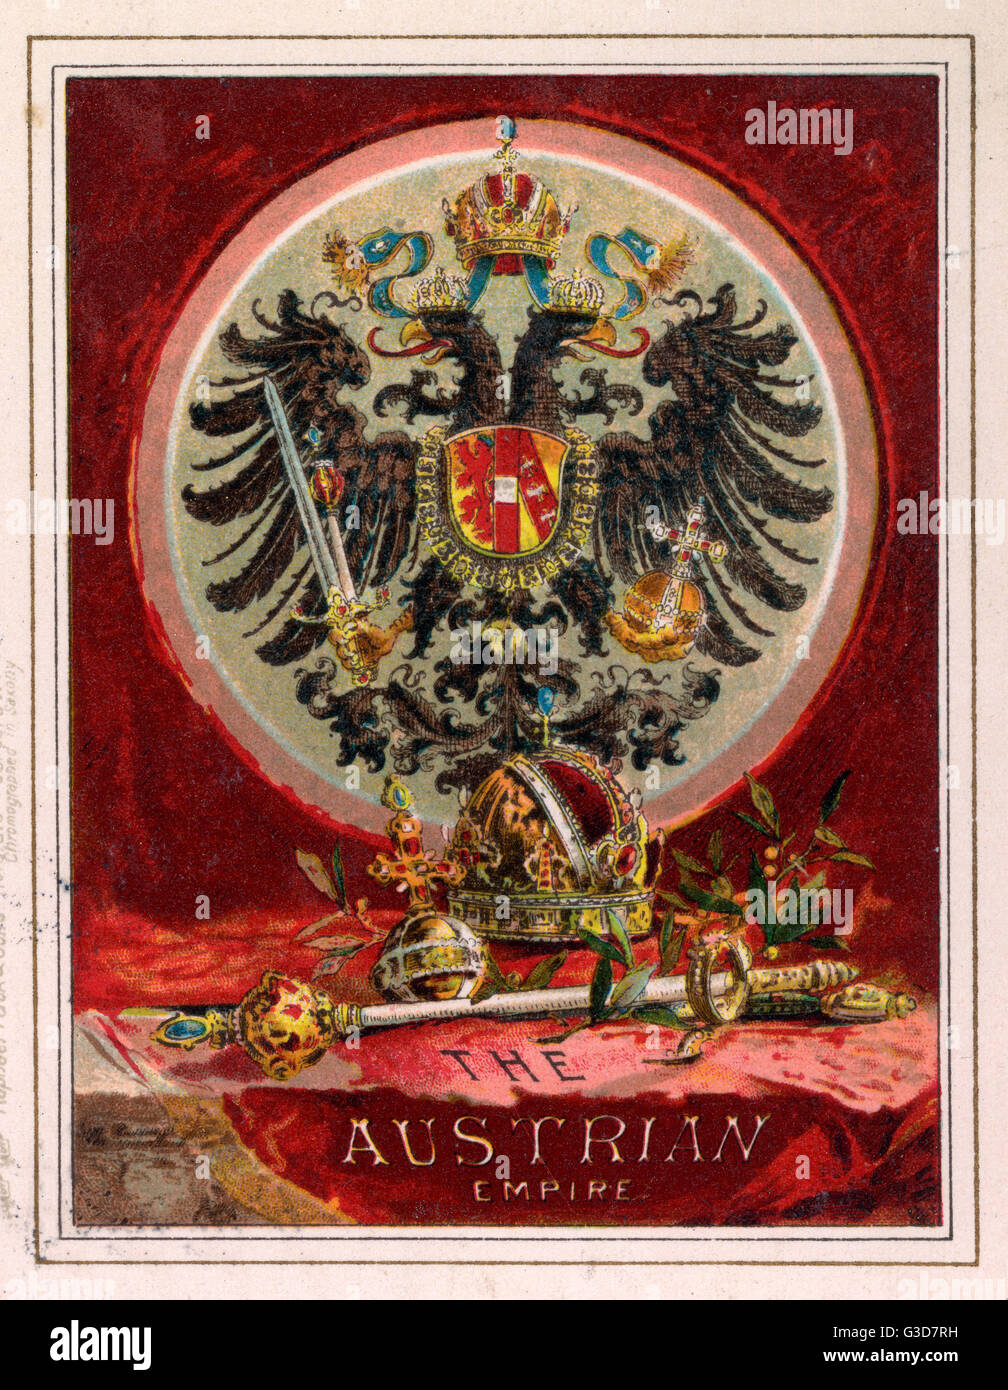 The Coat of Arms of The Austrian Empire     Date: circa 1900 - Stock Image